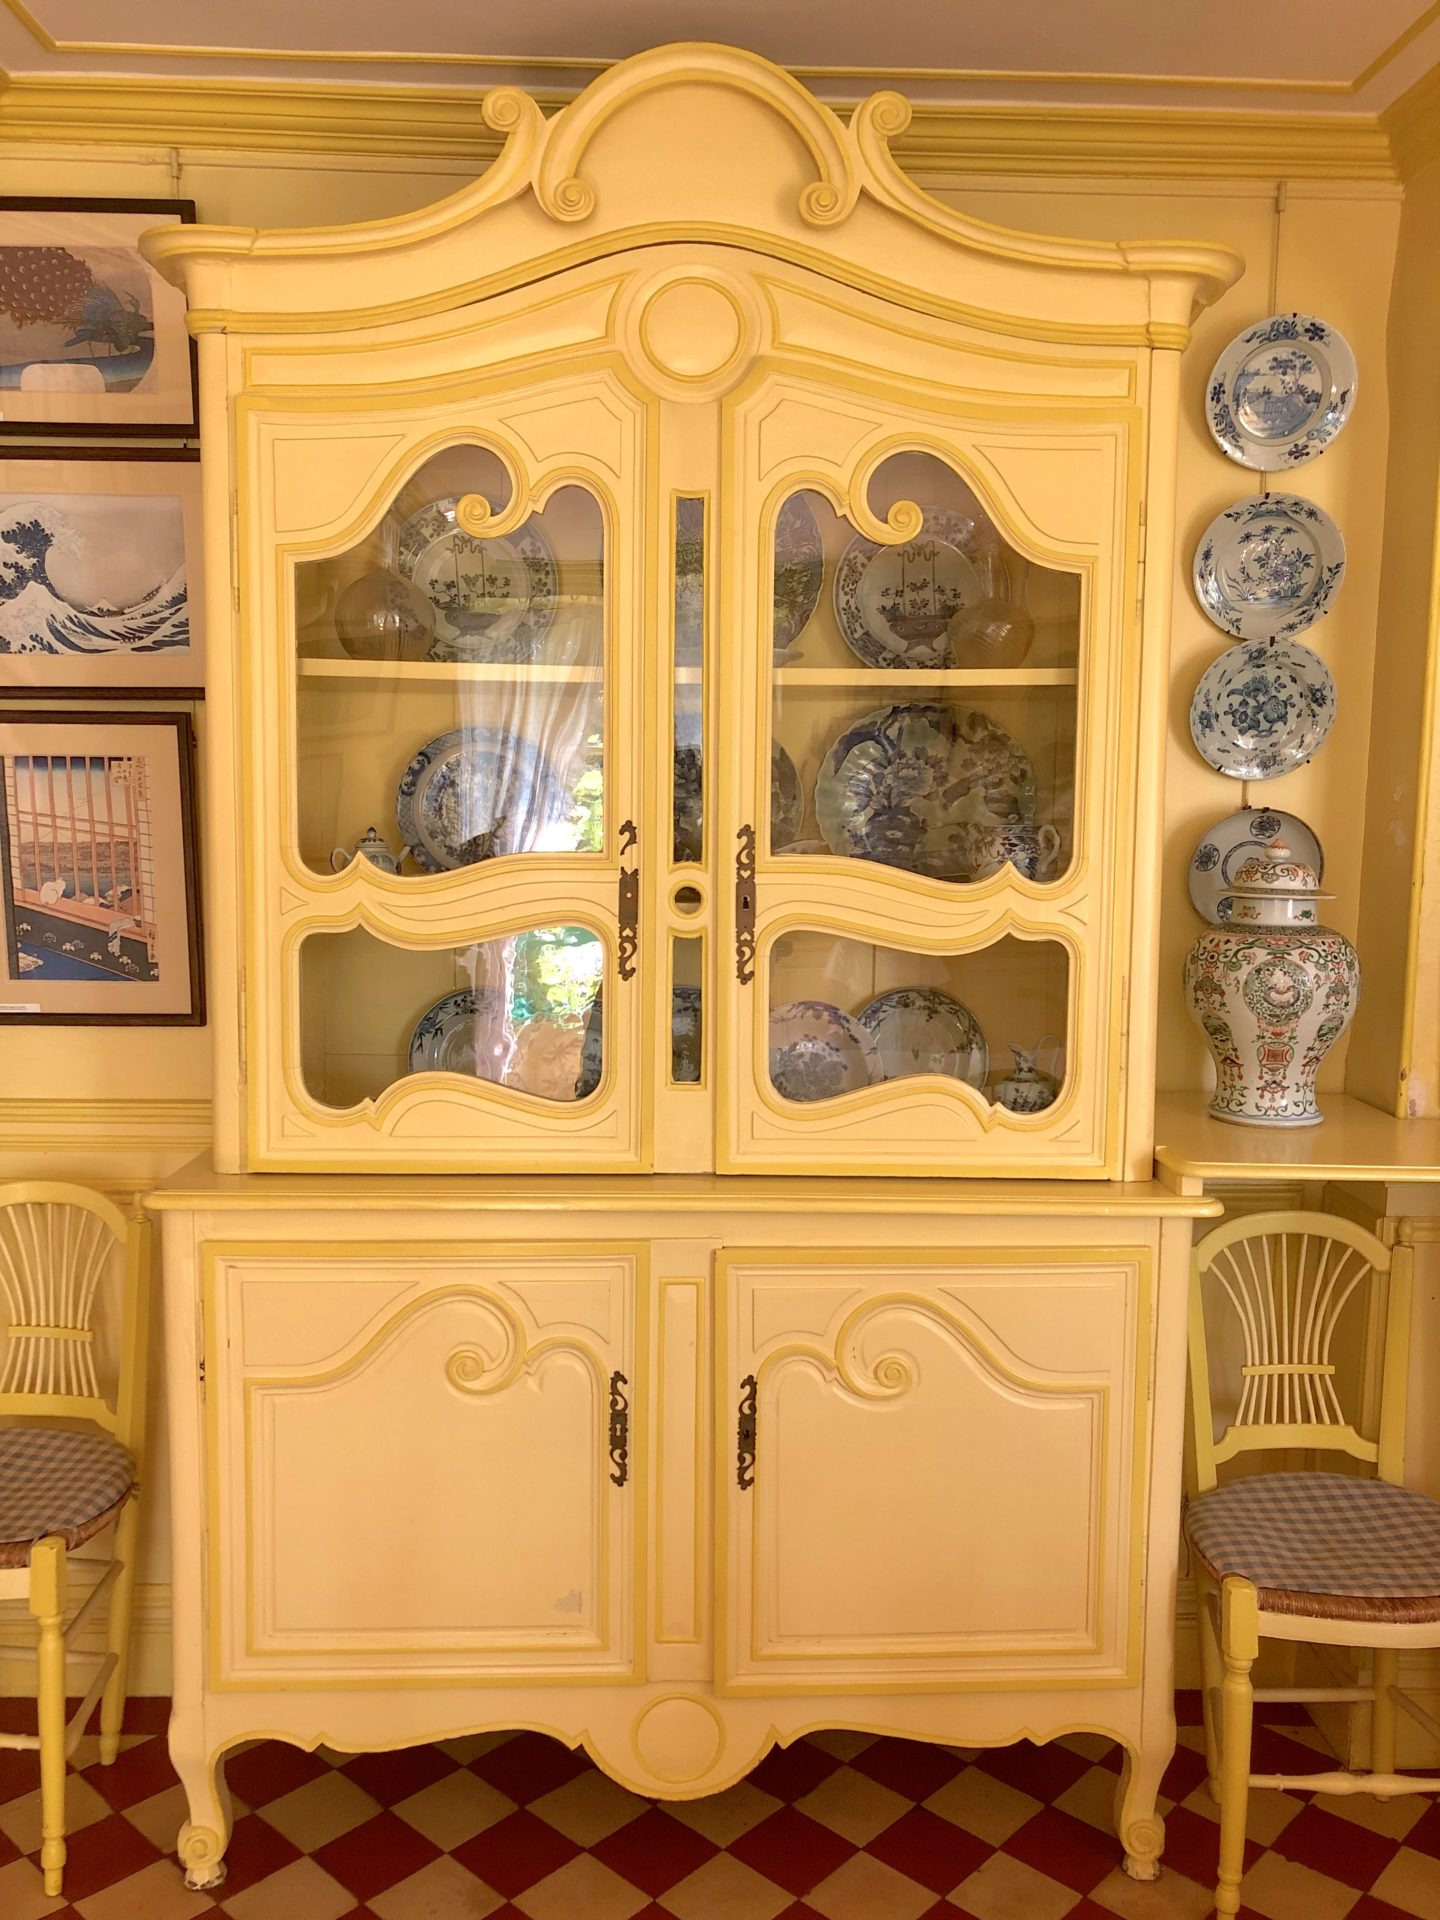 Monet's yellow dining room, The yellow french dresser looks like the armoire from Disneys Beauty and the Beast.